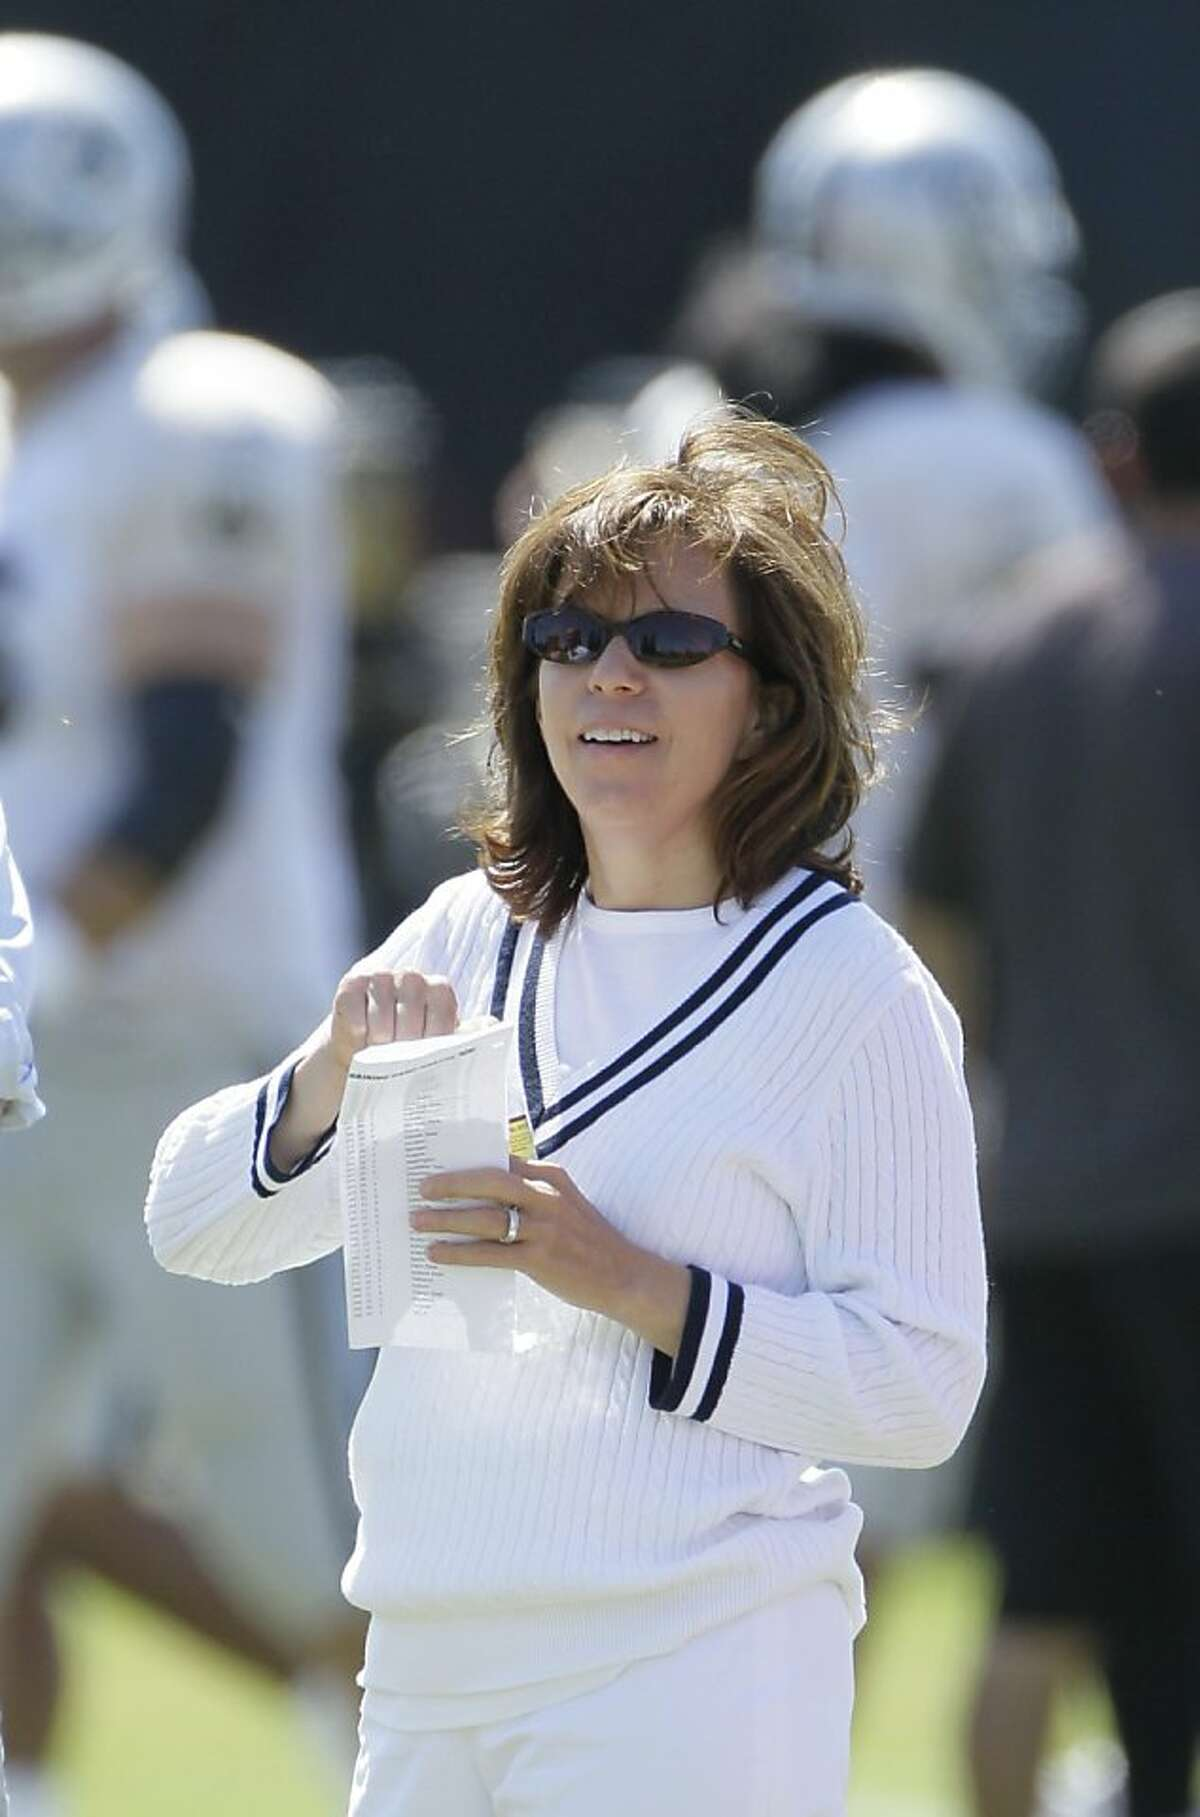 Oakland Raiders CEO Amy Trask during their NFL football training camp in Napa, Calif.,Thursday, Aug. 4, 2011. (AP Photo/Eric Risberg) Ran on: 10-09-2011 Amy Trask said the Davis family will keep control of the team. There is a succession plan in place, the chief executive said.